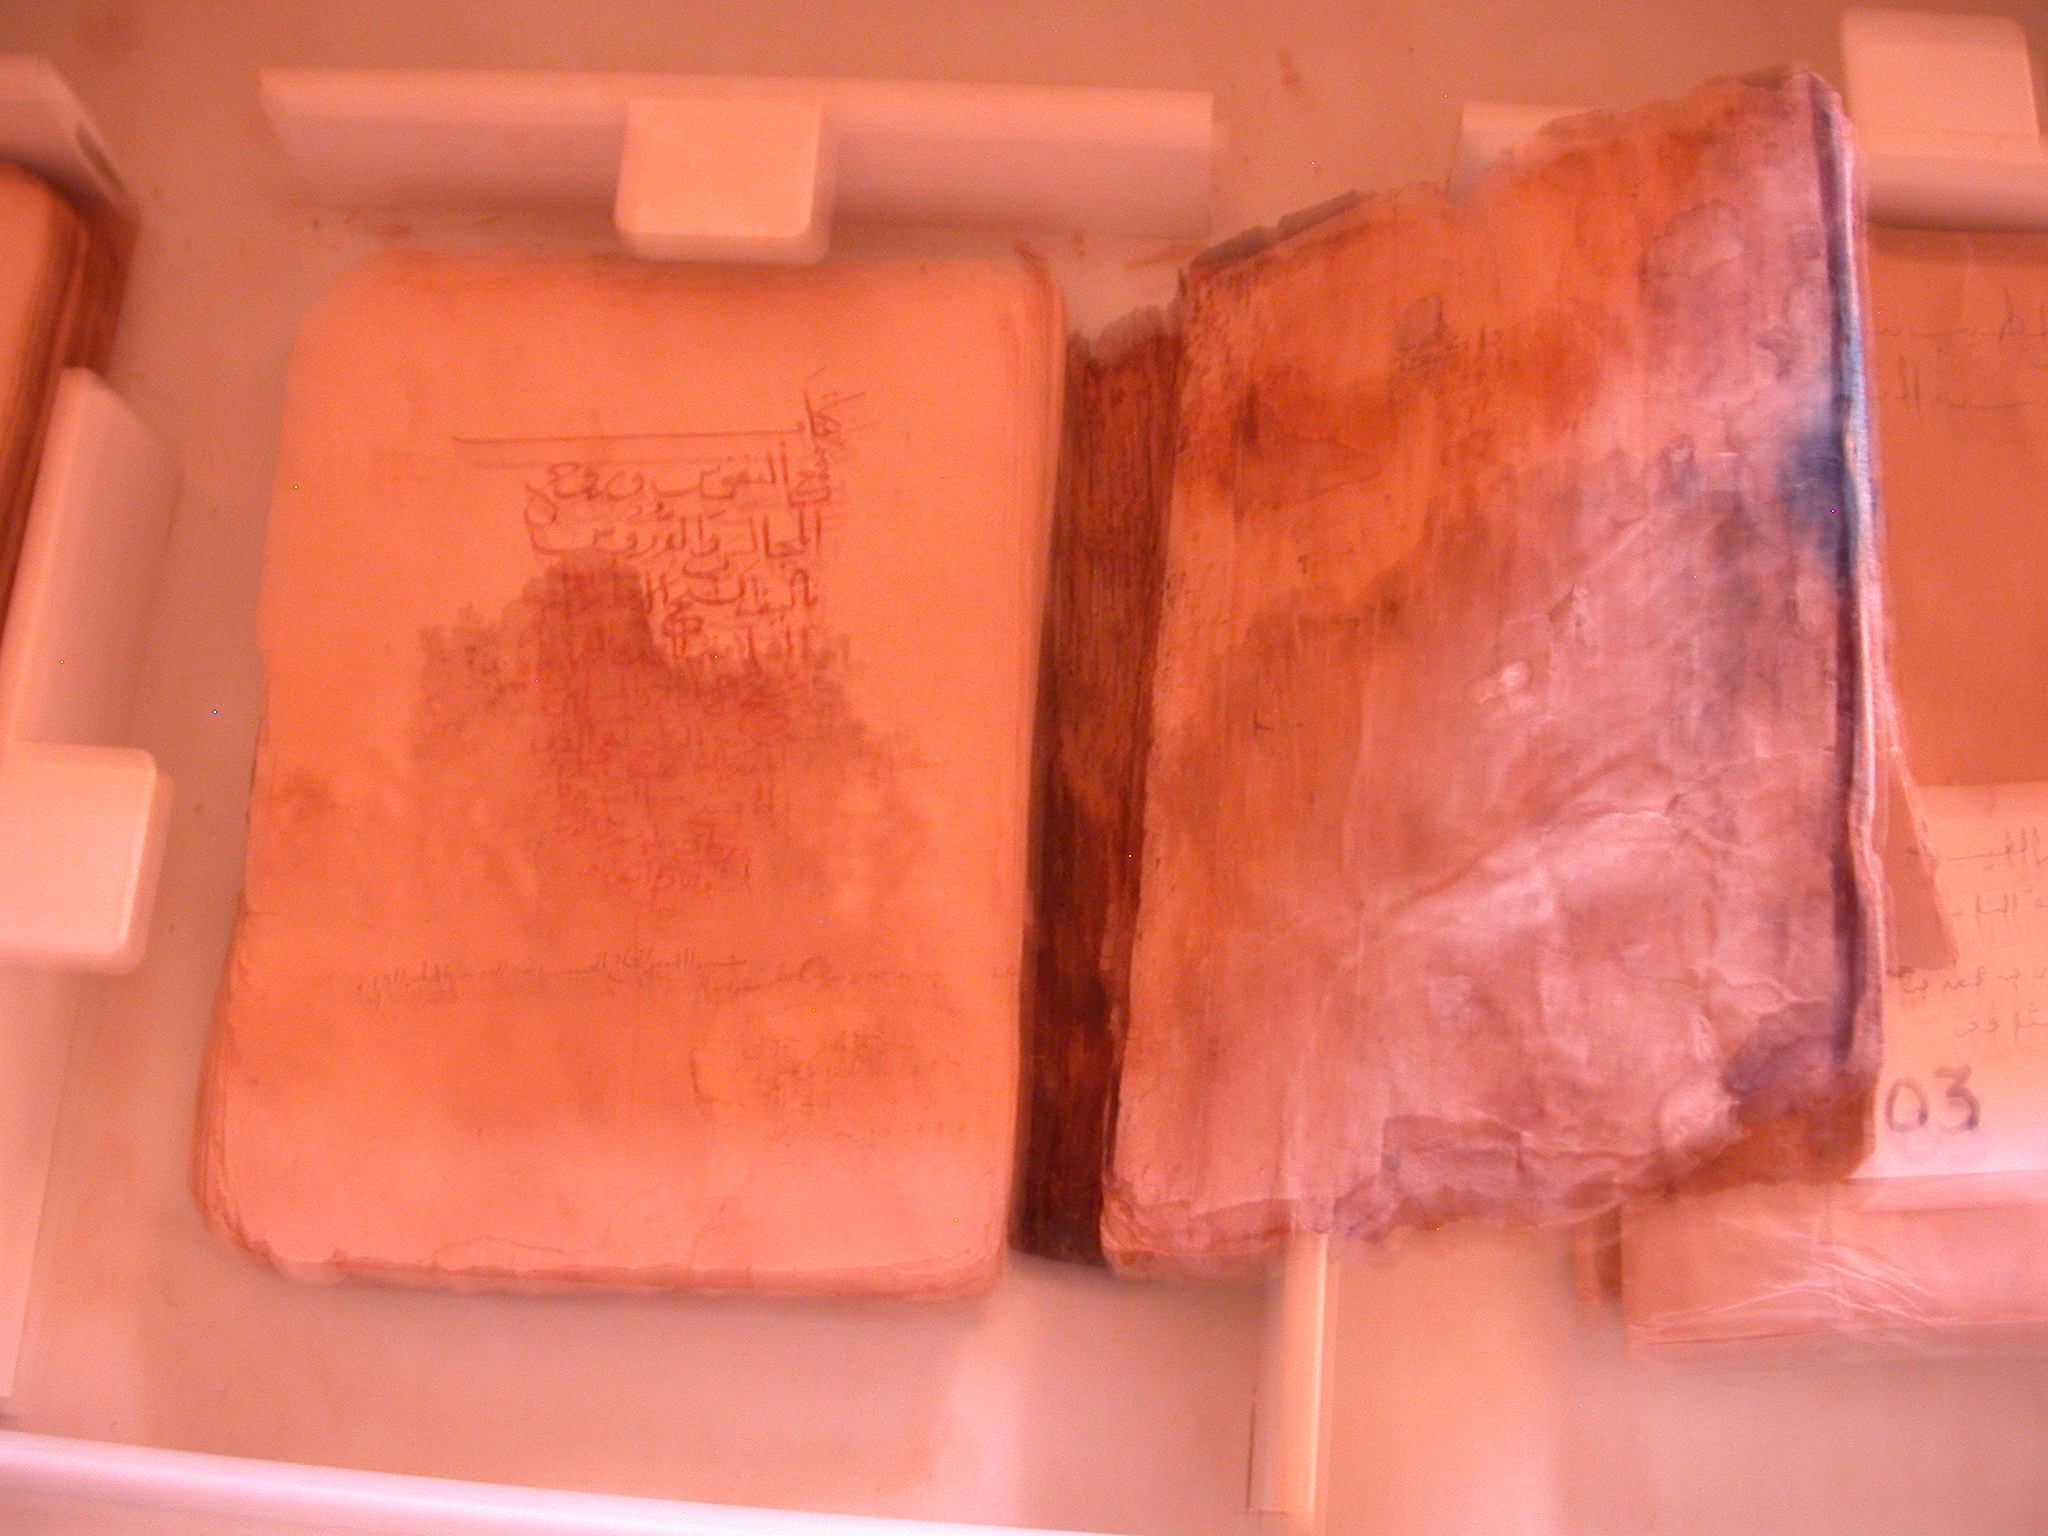 Damaged Book at Library in Ancient City of Oulata, Mauritania